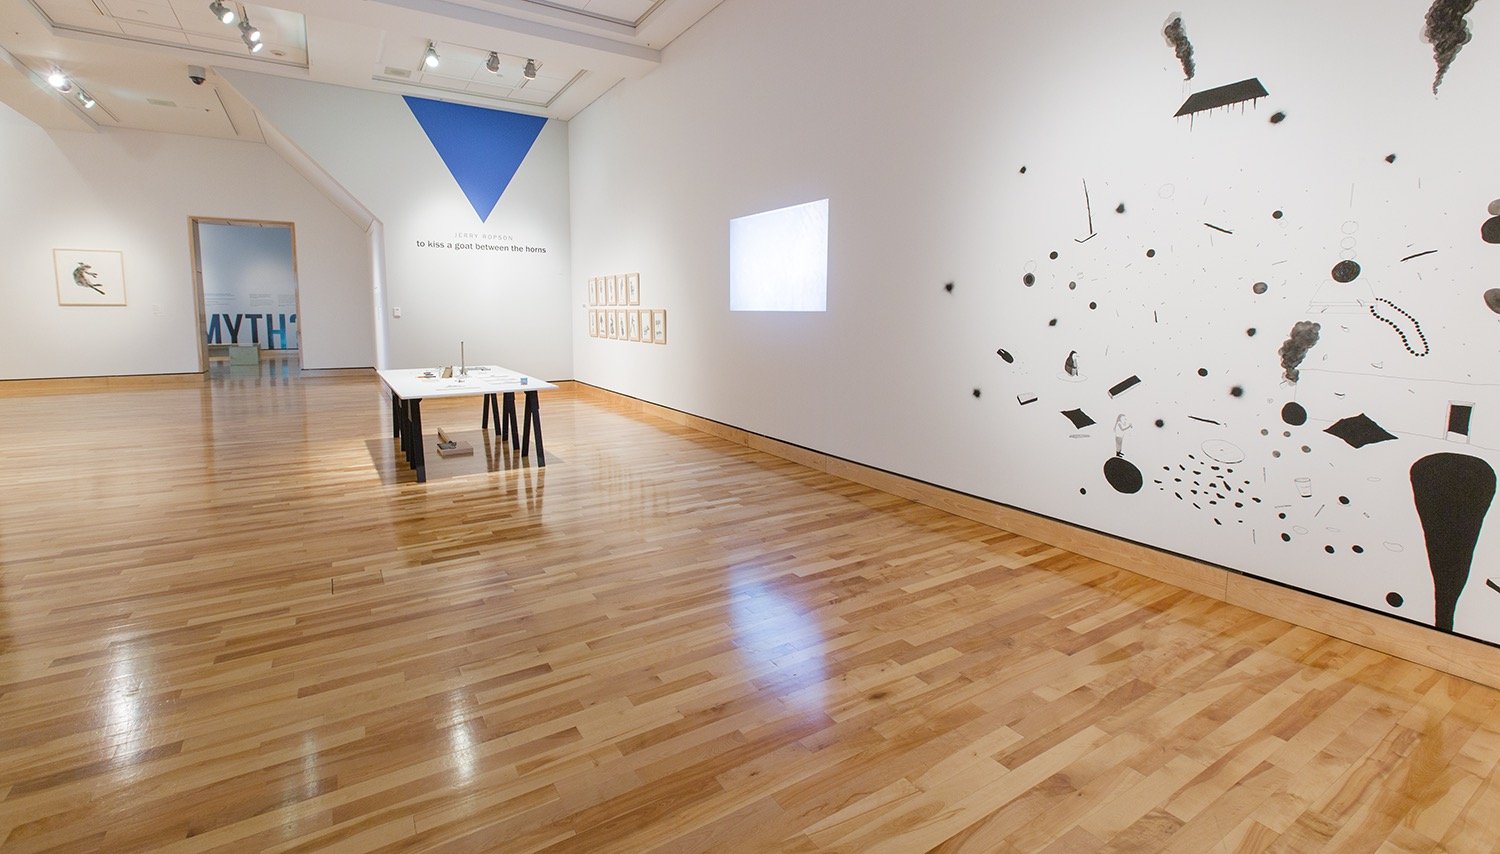 Curatorial text by Mireille Eagan, Curator of Contemporary Art, The Rooms Art Gallery